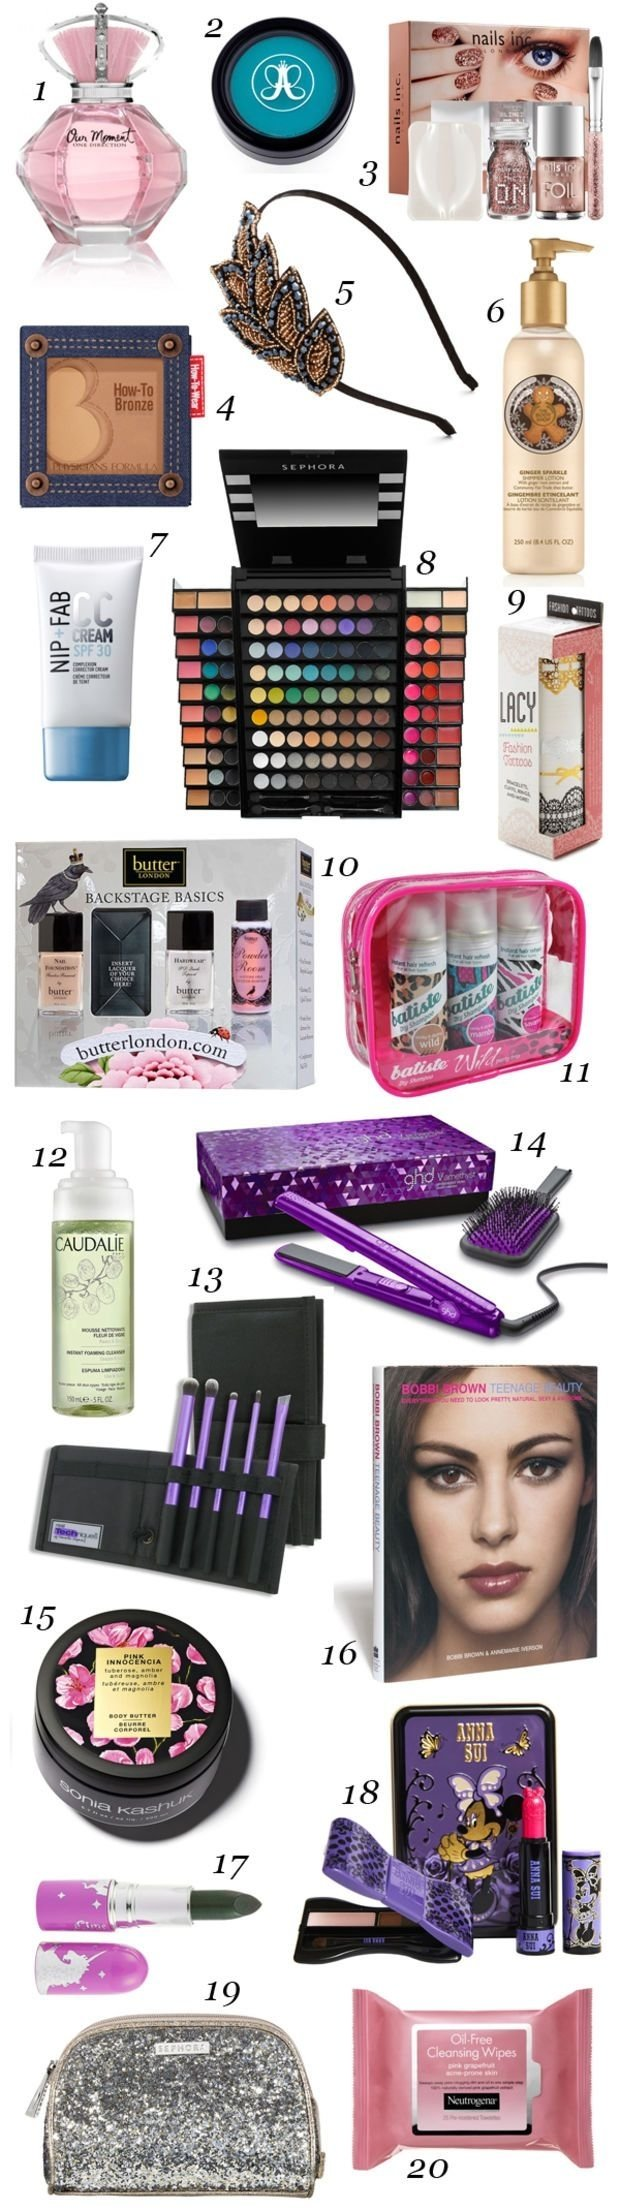 10 Famous Gift Ideas For 14 Yr Old Girl Fancy Design Christmas Gifts 18 Year